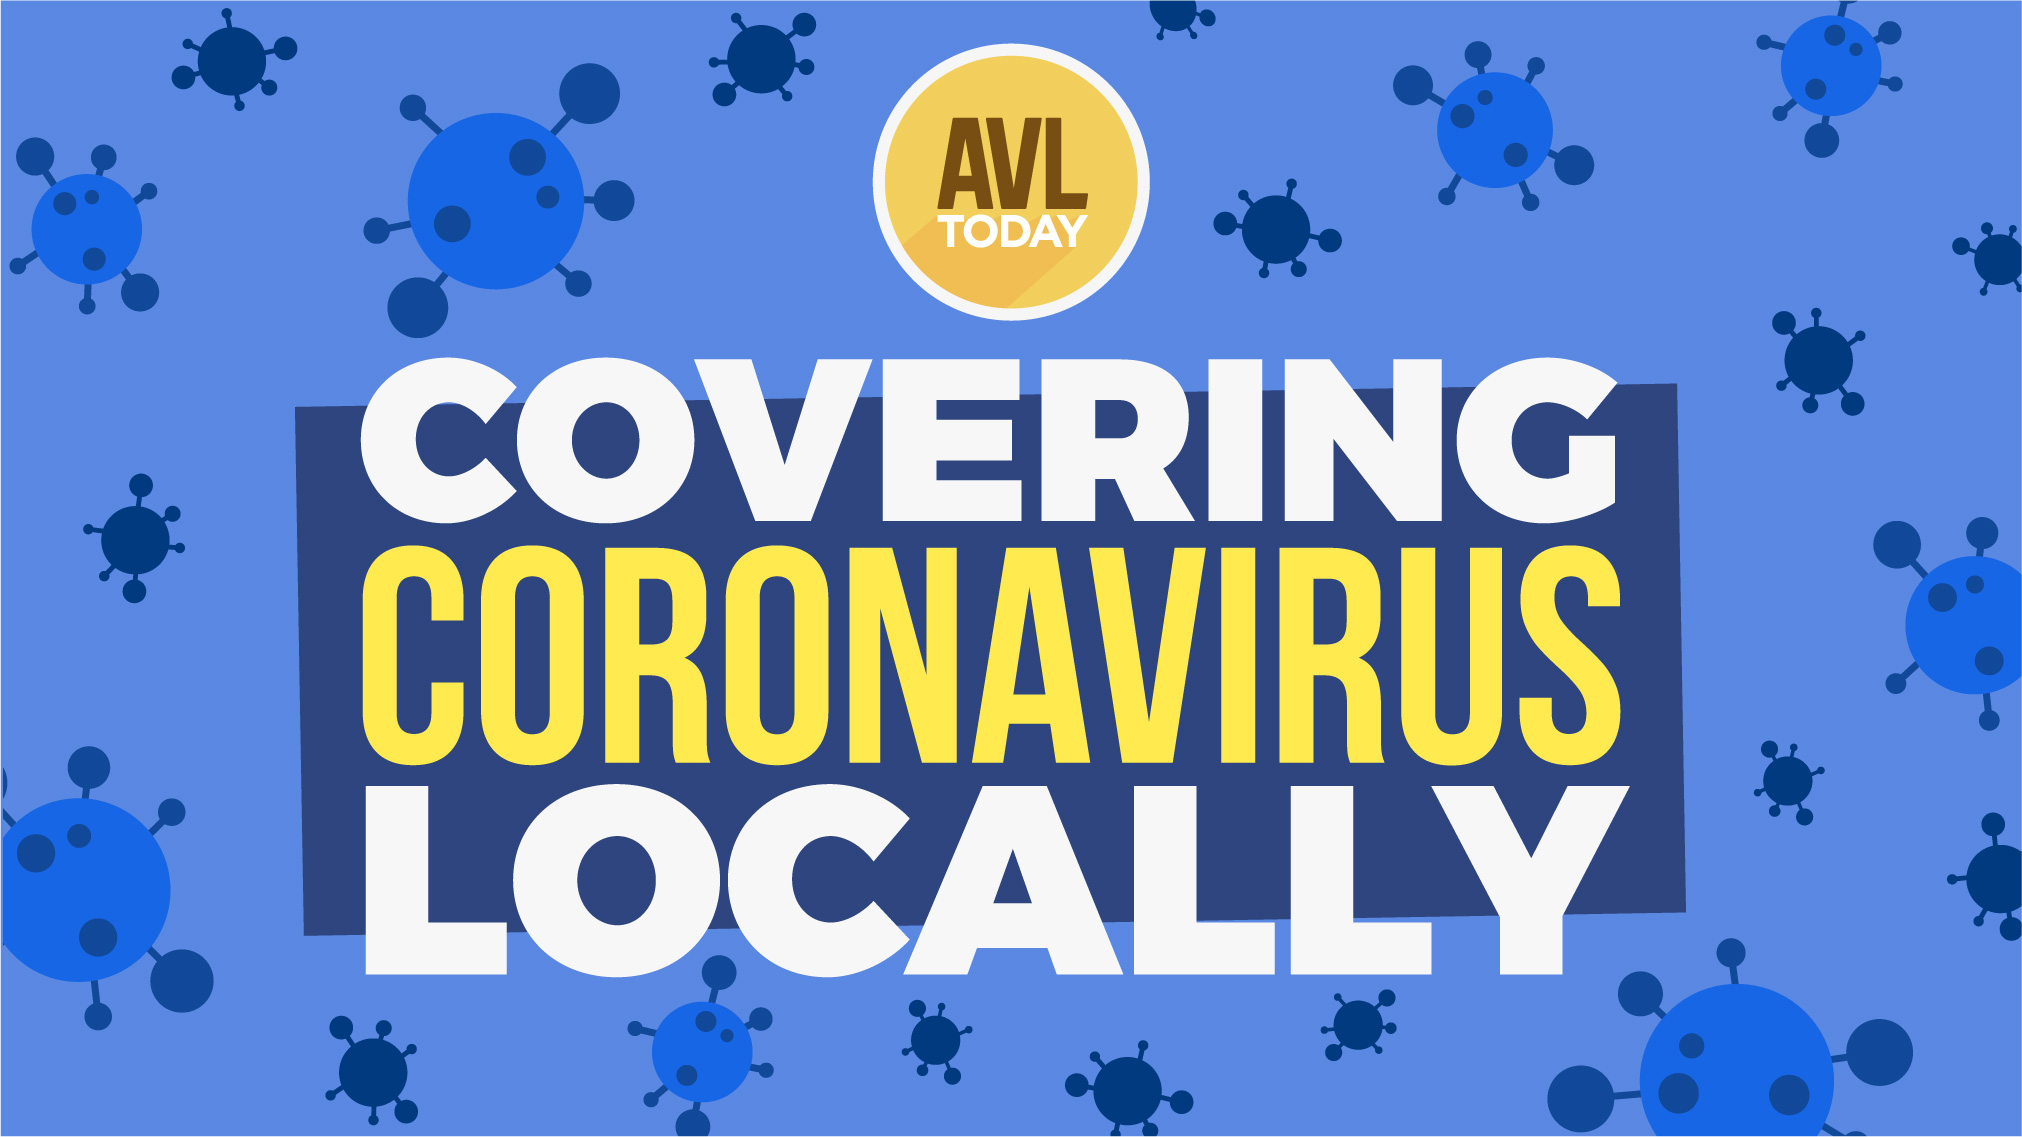 Coronavirus The Latest Local Updates Cancellations Resources More Avltoday